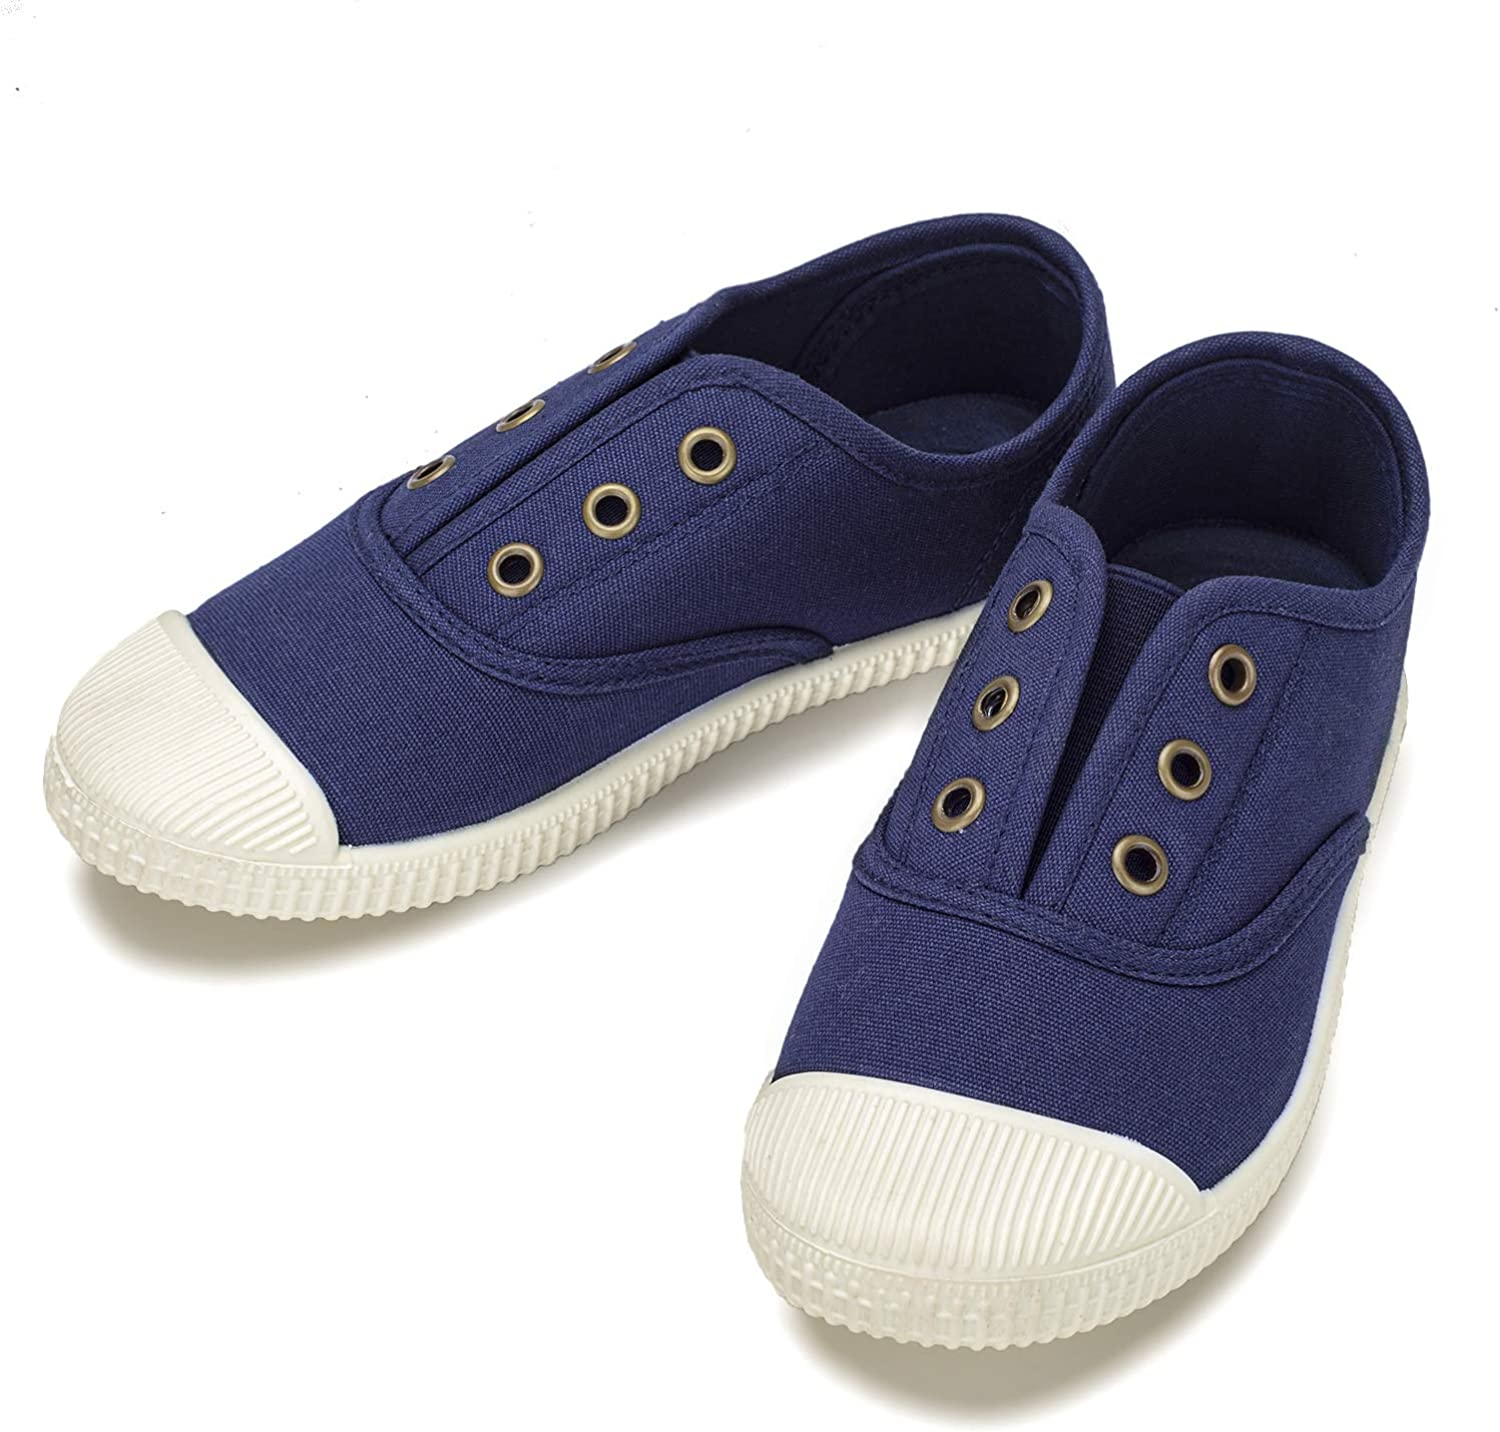 Toddle//Little Kids//Big Kids Kids Shoes Toddlers Canvas Sneakers Slip-on Comfortable Light Weight Skin-Friendly Causal Running Tennis Shoes for Boys Girls